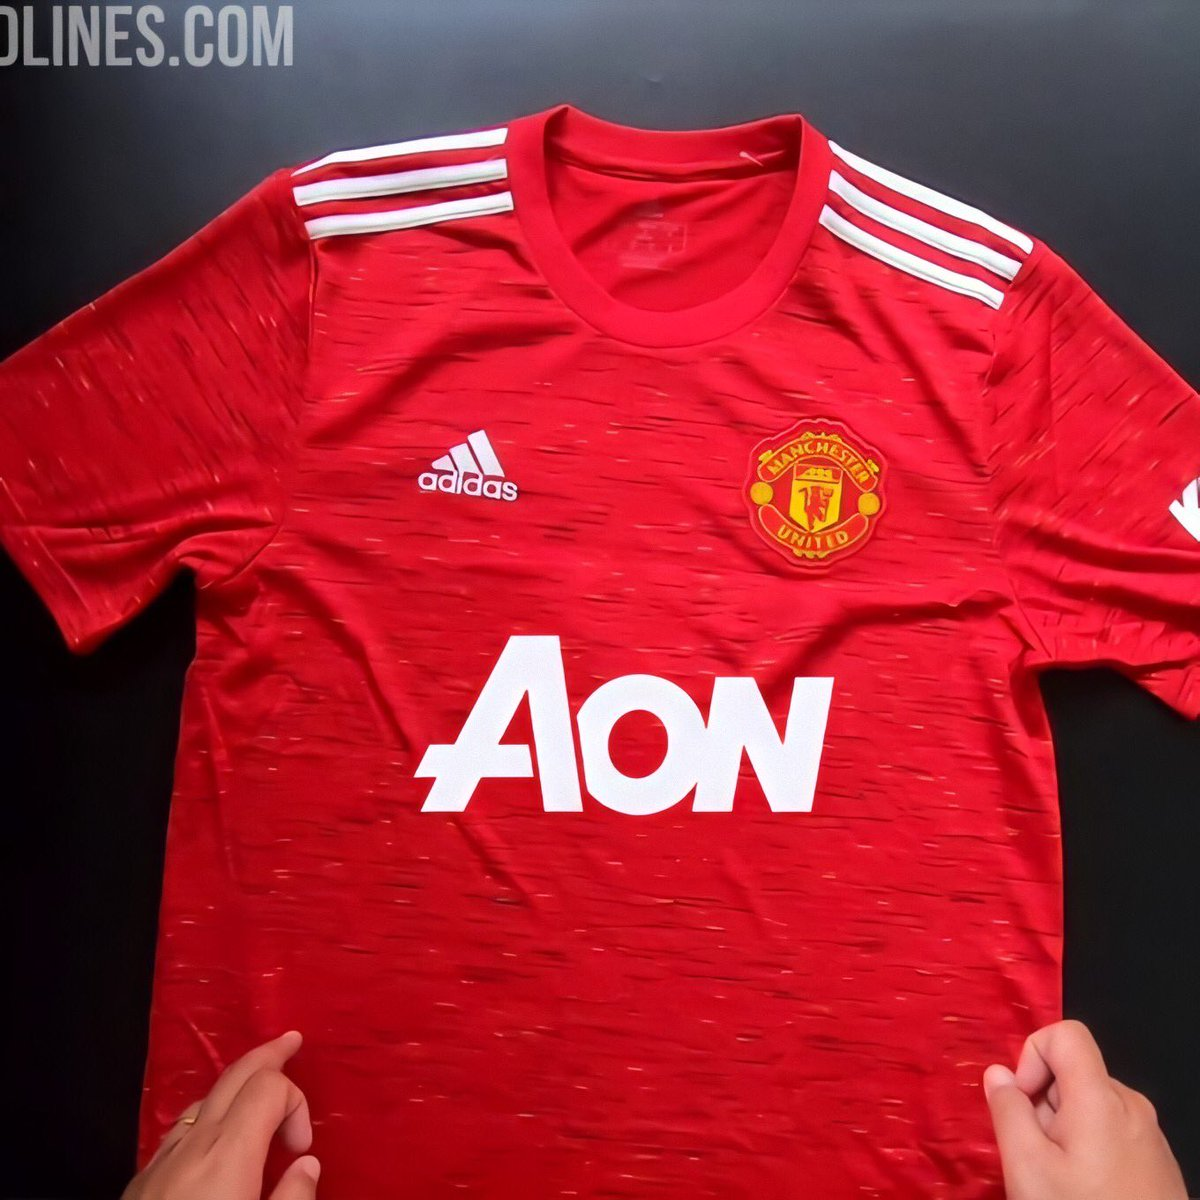 Unpopular opinion but I loved the AON sponsorship. This looks great on the new home kit https://t.co/MJuMMRgBgZ